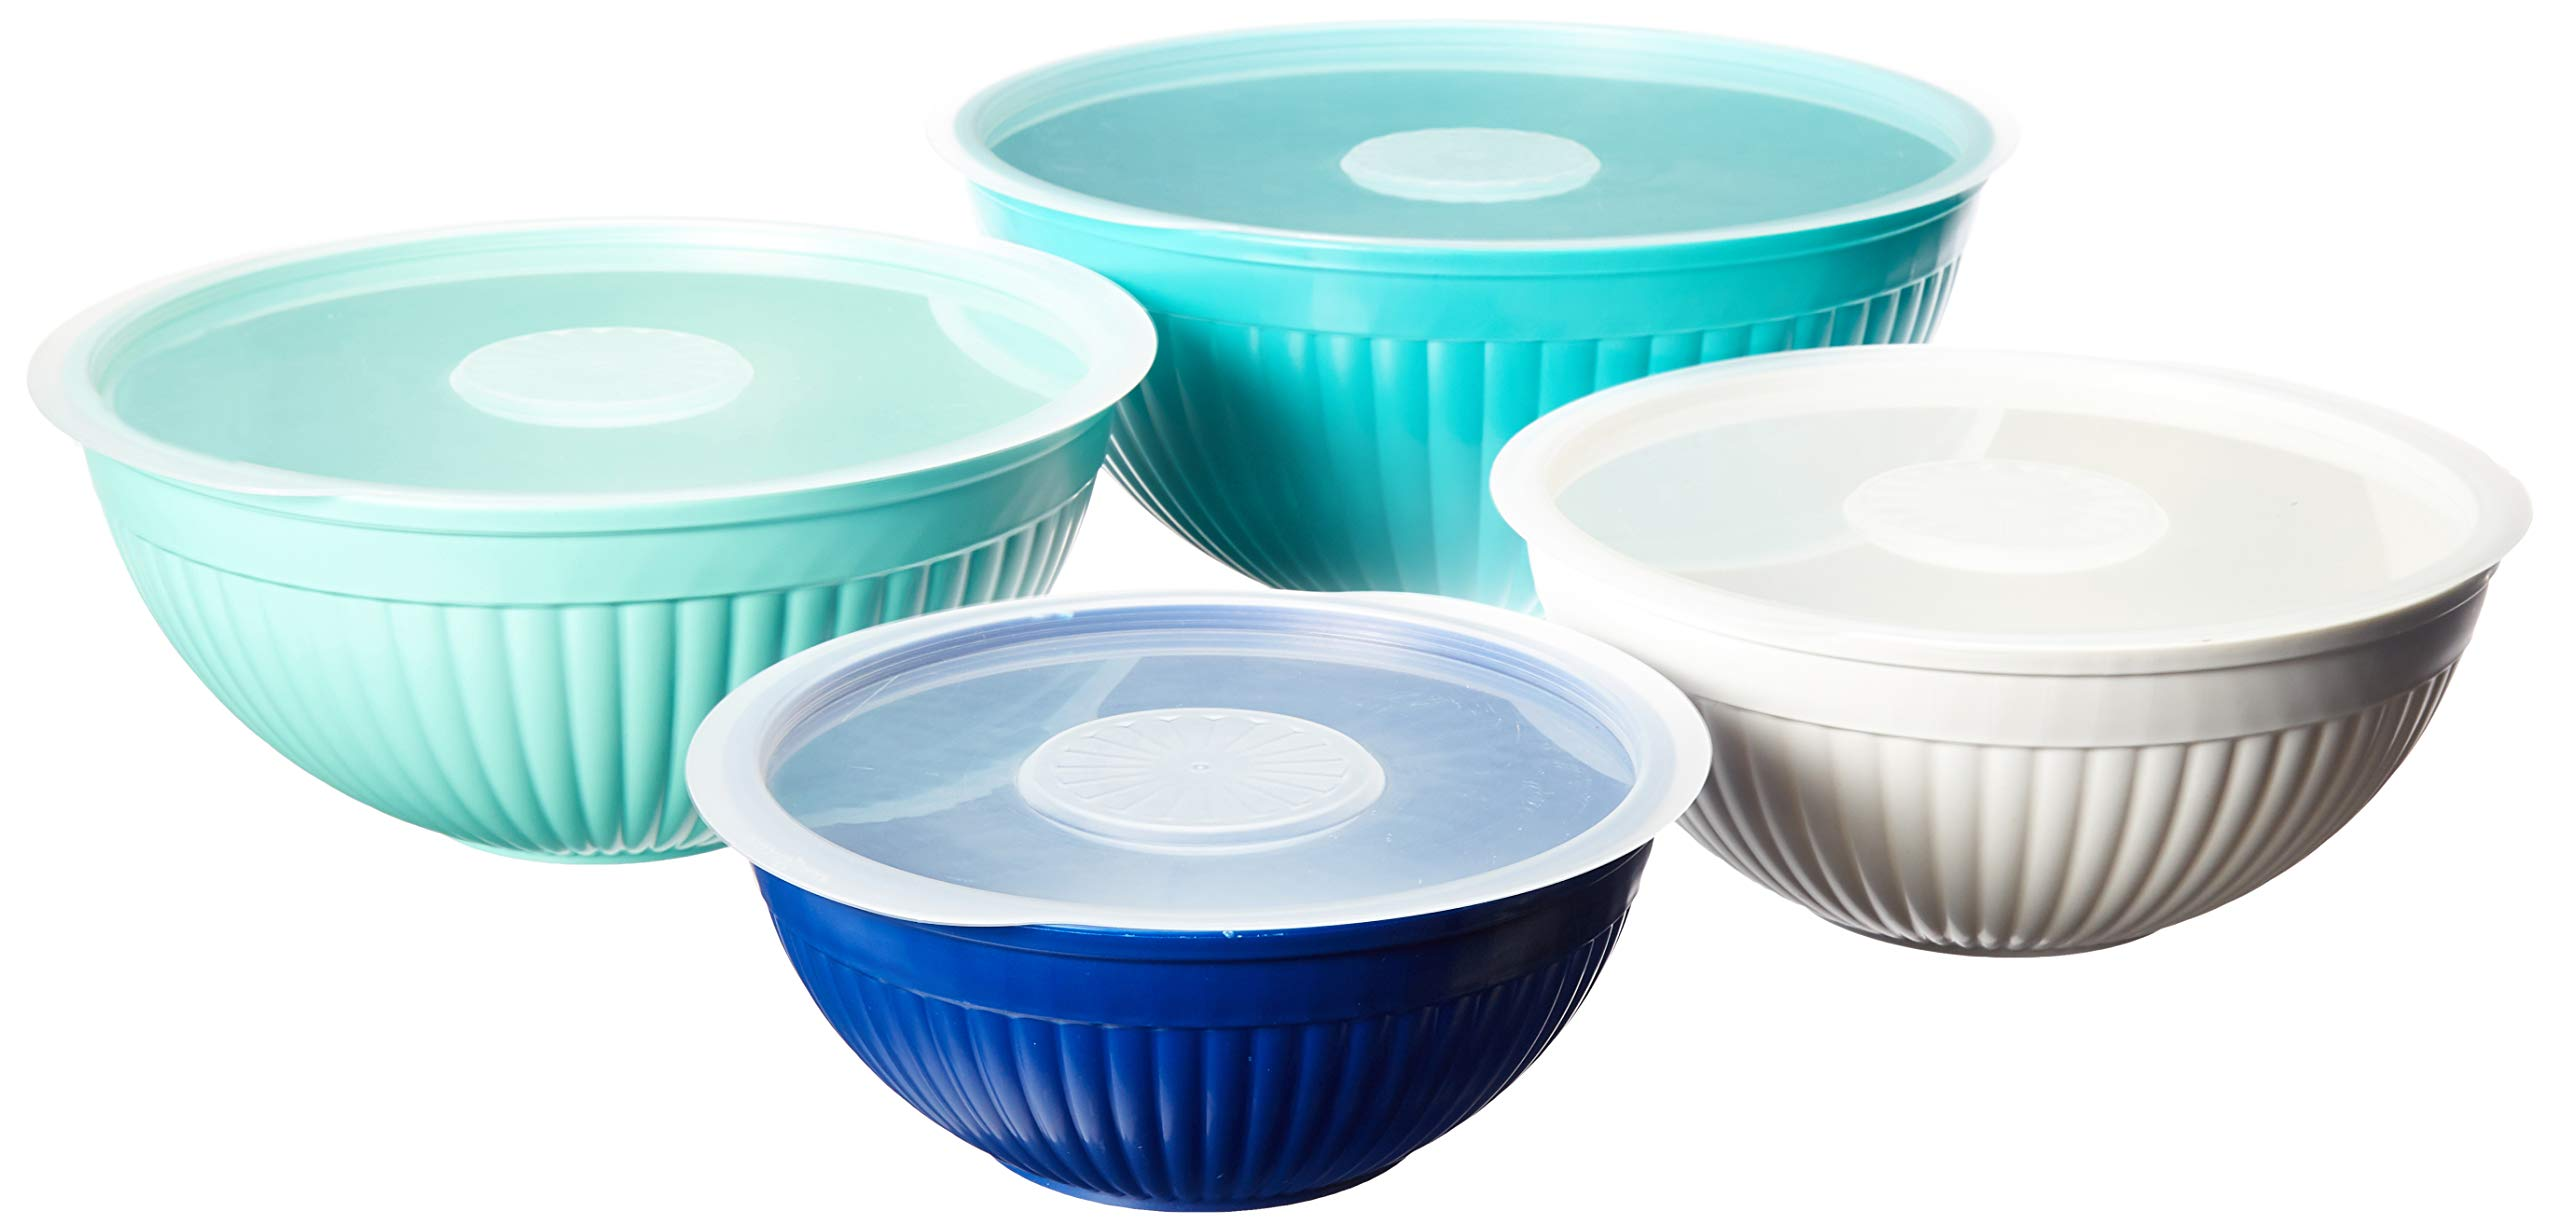 Nordic Ware 69518 Covered Bowl Set, 8-pc, Set of 8, Coastal Colors by Nordic Ware